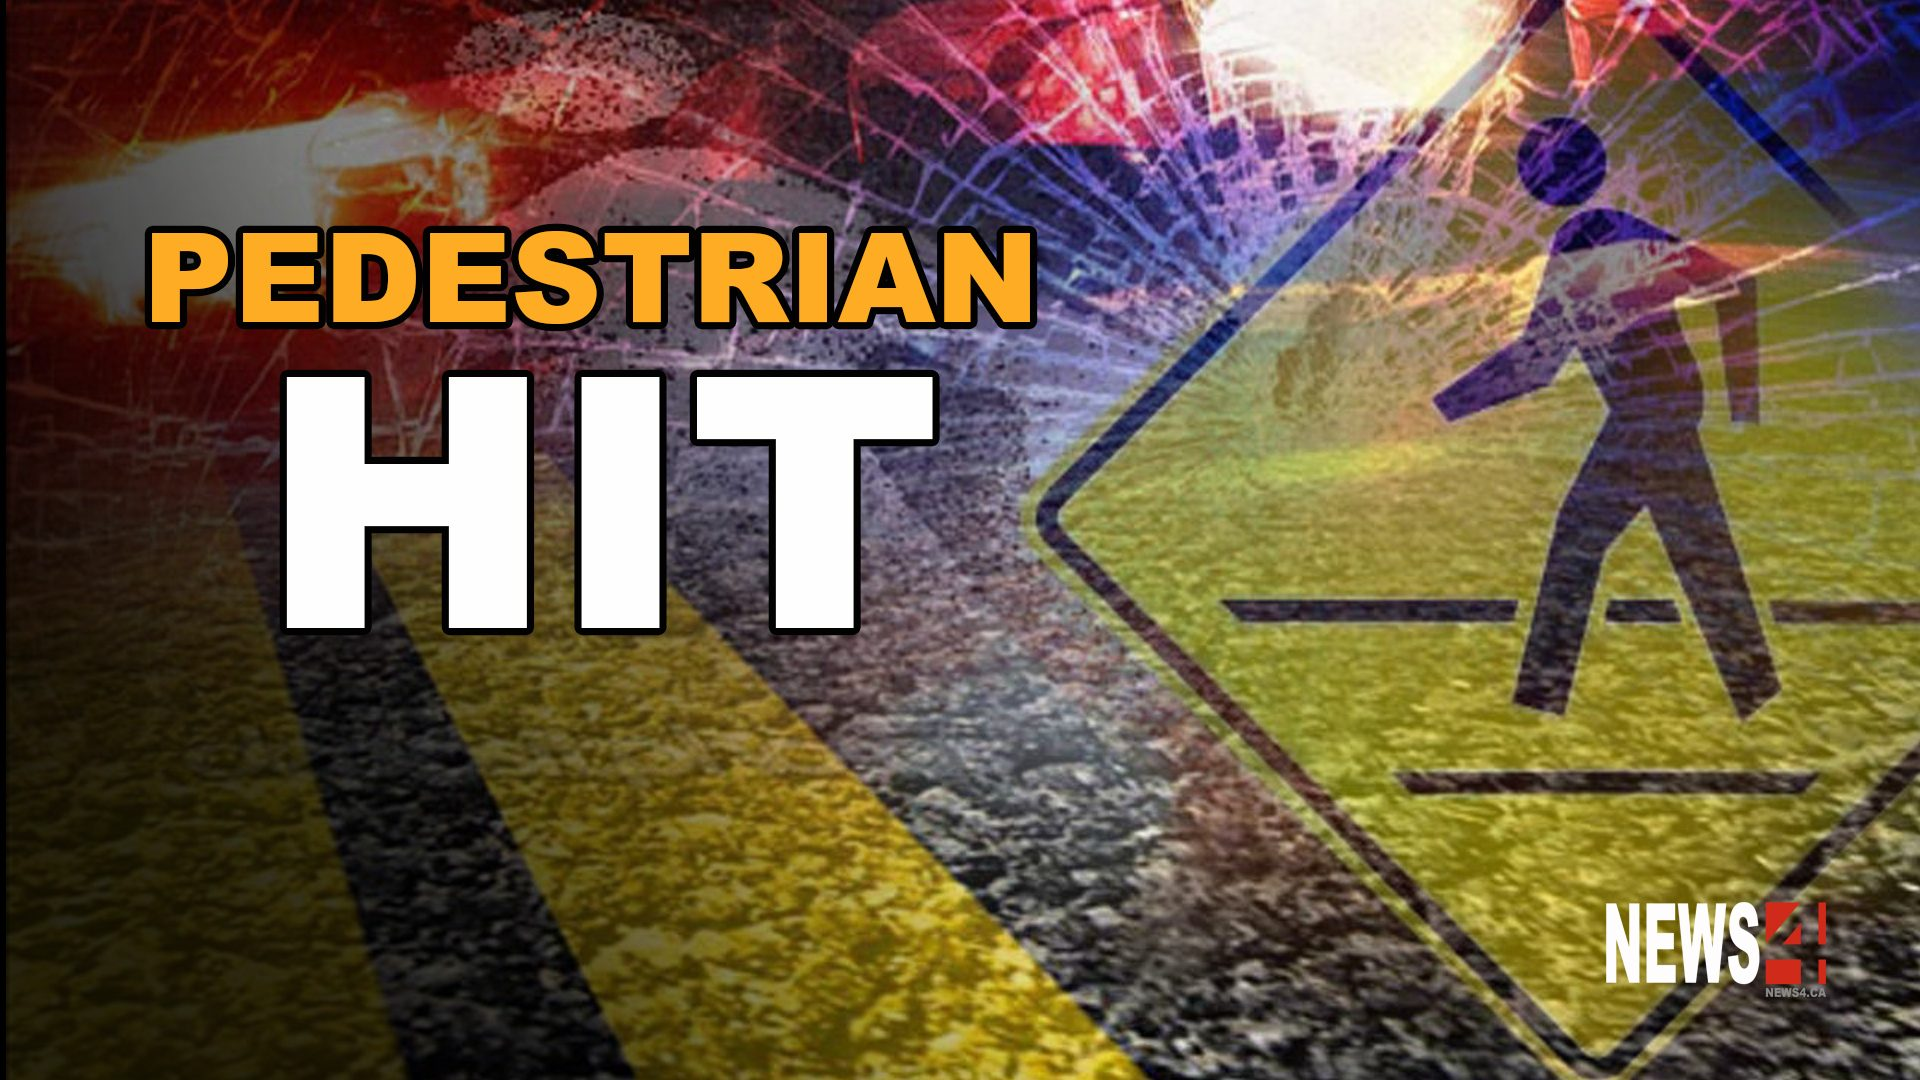 Pedestrian Hit Graphic